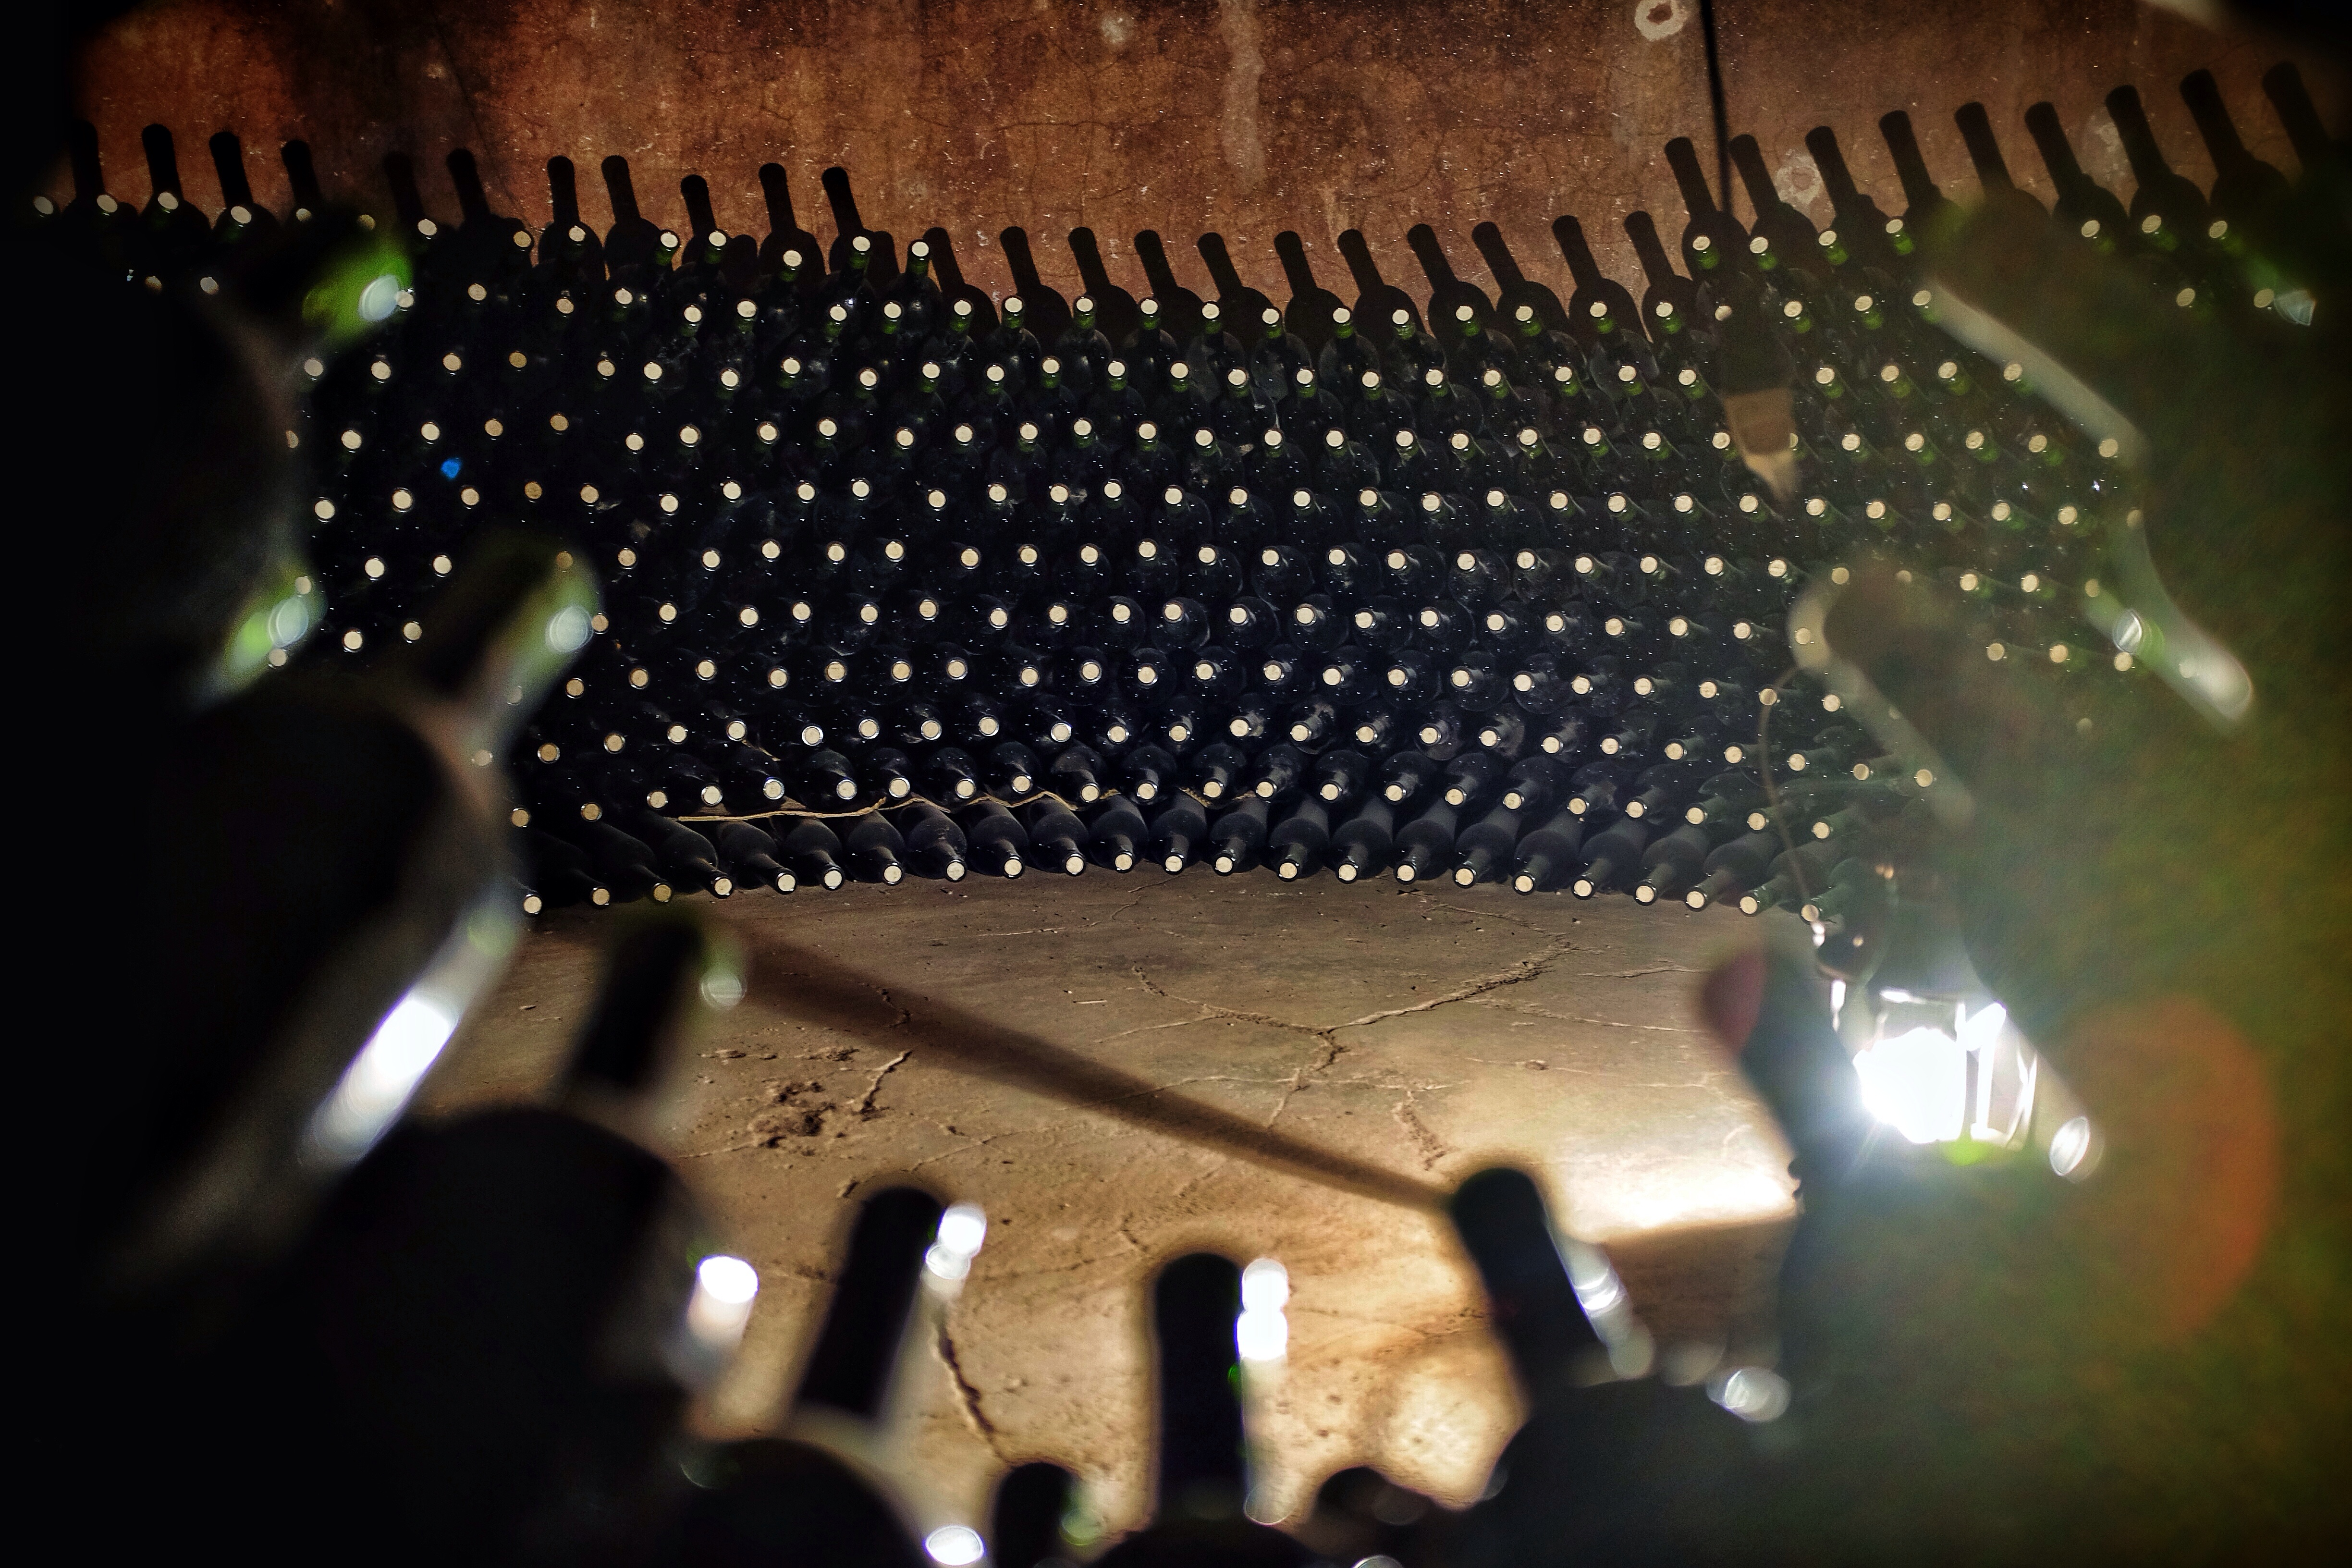 Bottles aging in the old vats of  the Famila di Tommaso bodega (winery).